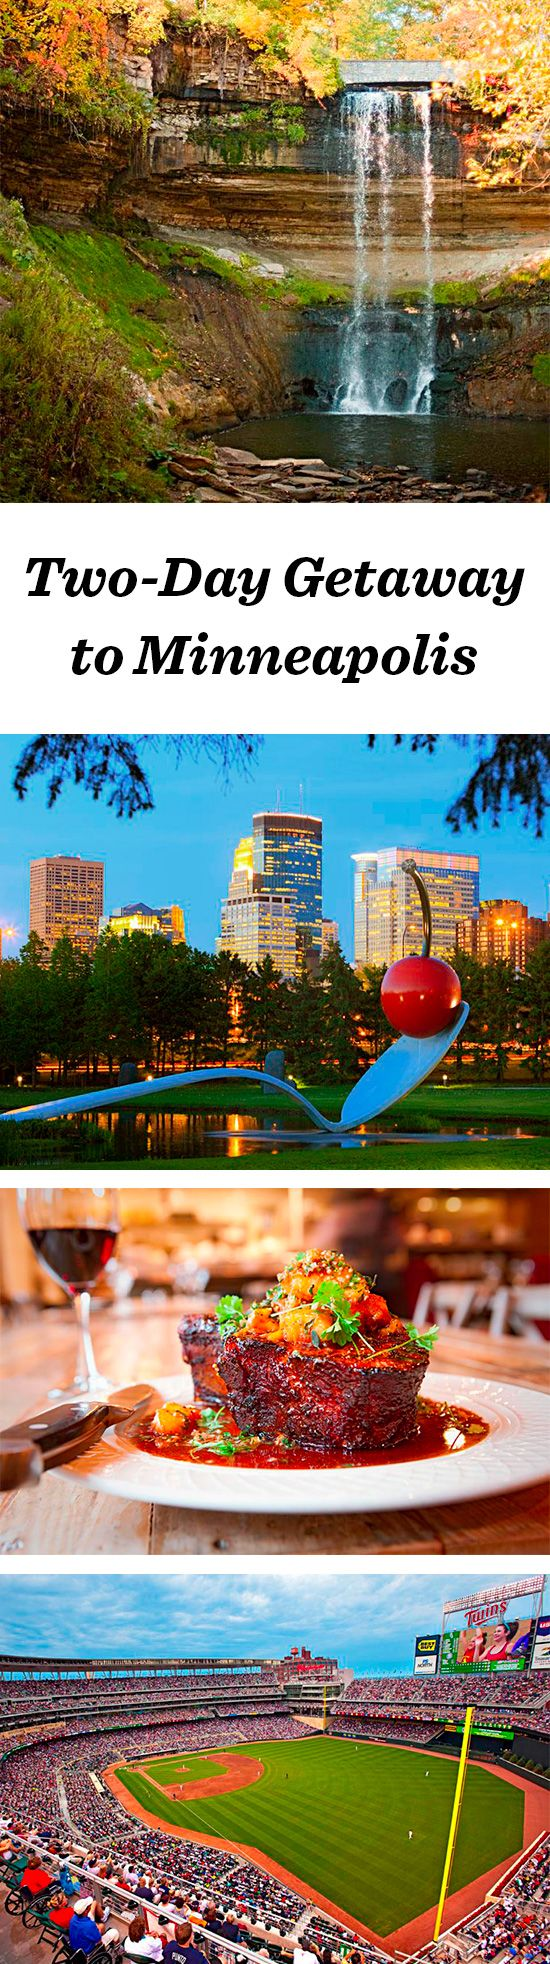 The state's largest metro hums with pro sports, pristine parks and a megamall. The bigger of the Twin Cities, Minneapolis is known for its impressive art collection and its global take on food and activities: http://www.midwestliving.com/travel/minnesota/minneapolis/two-day-getaway-to-minneapolis/ #minneapolis #twincities #minnesota